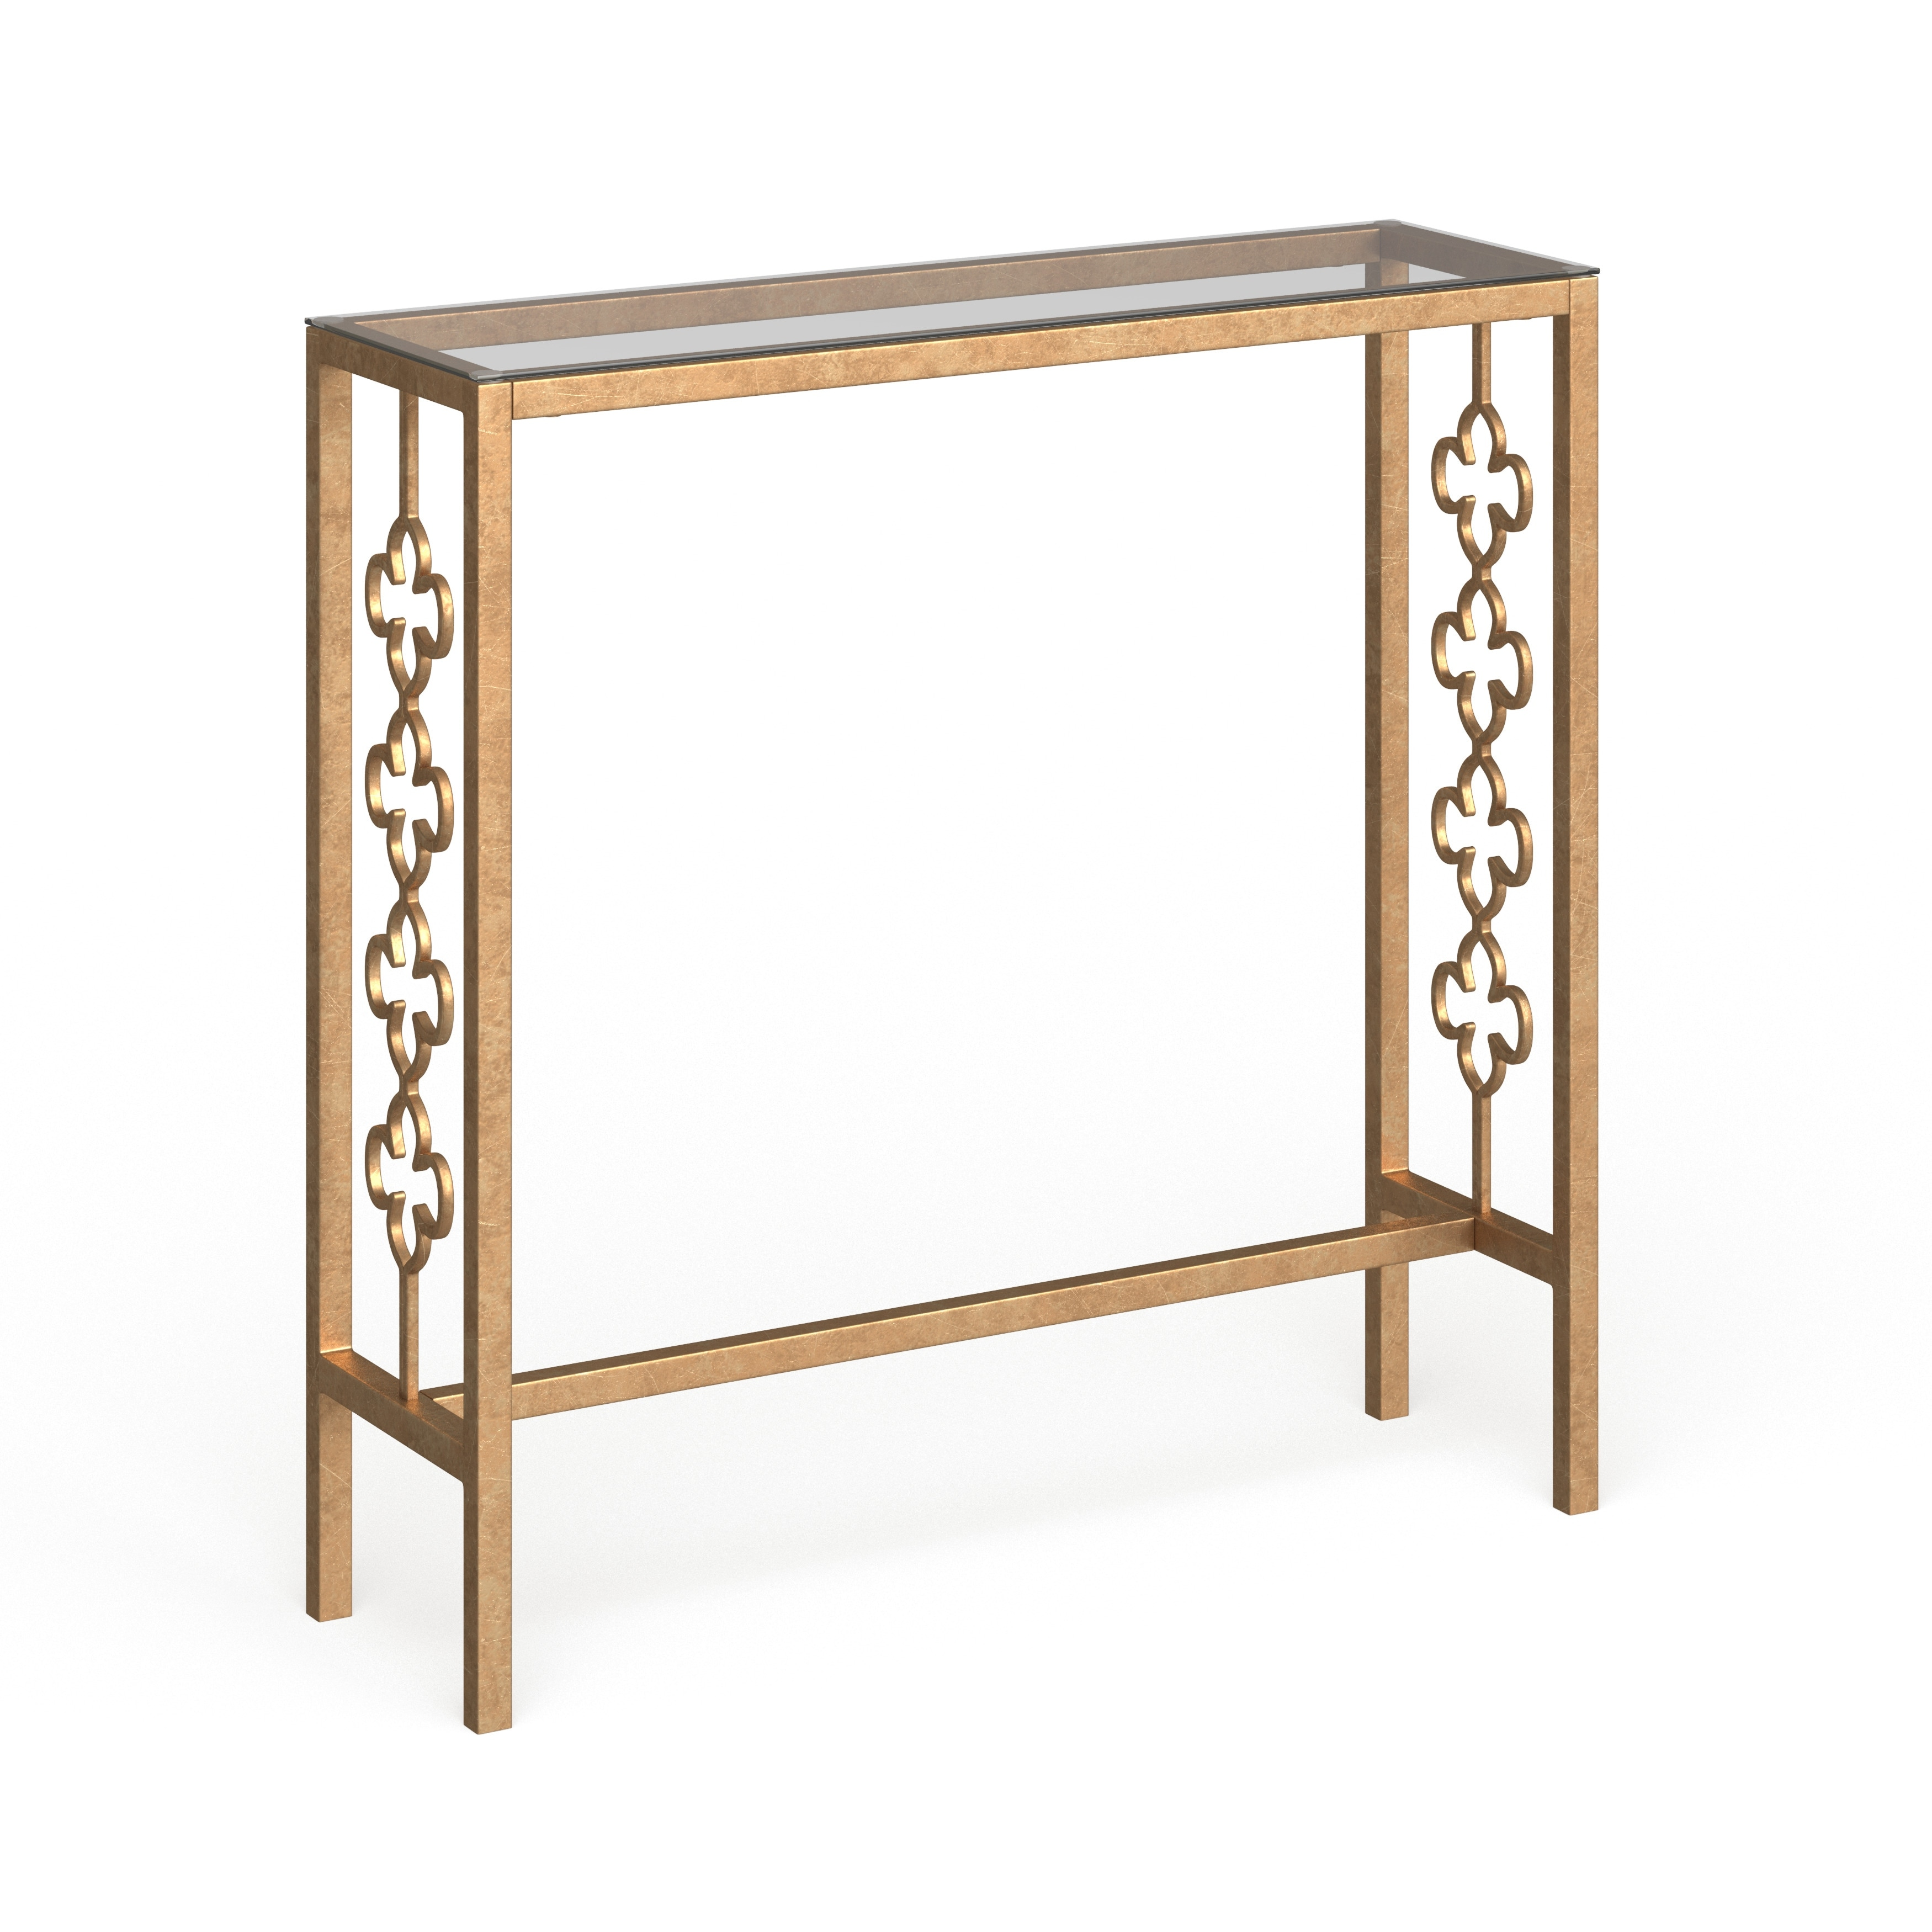 Safavieh Jovanna Antique Gold Leaf Console Table 36 8 X 11 1 X 37 On Sale Overstock 10856975